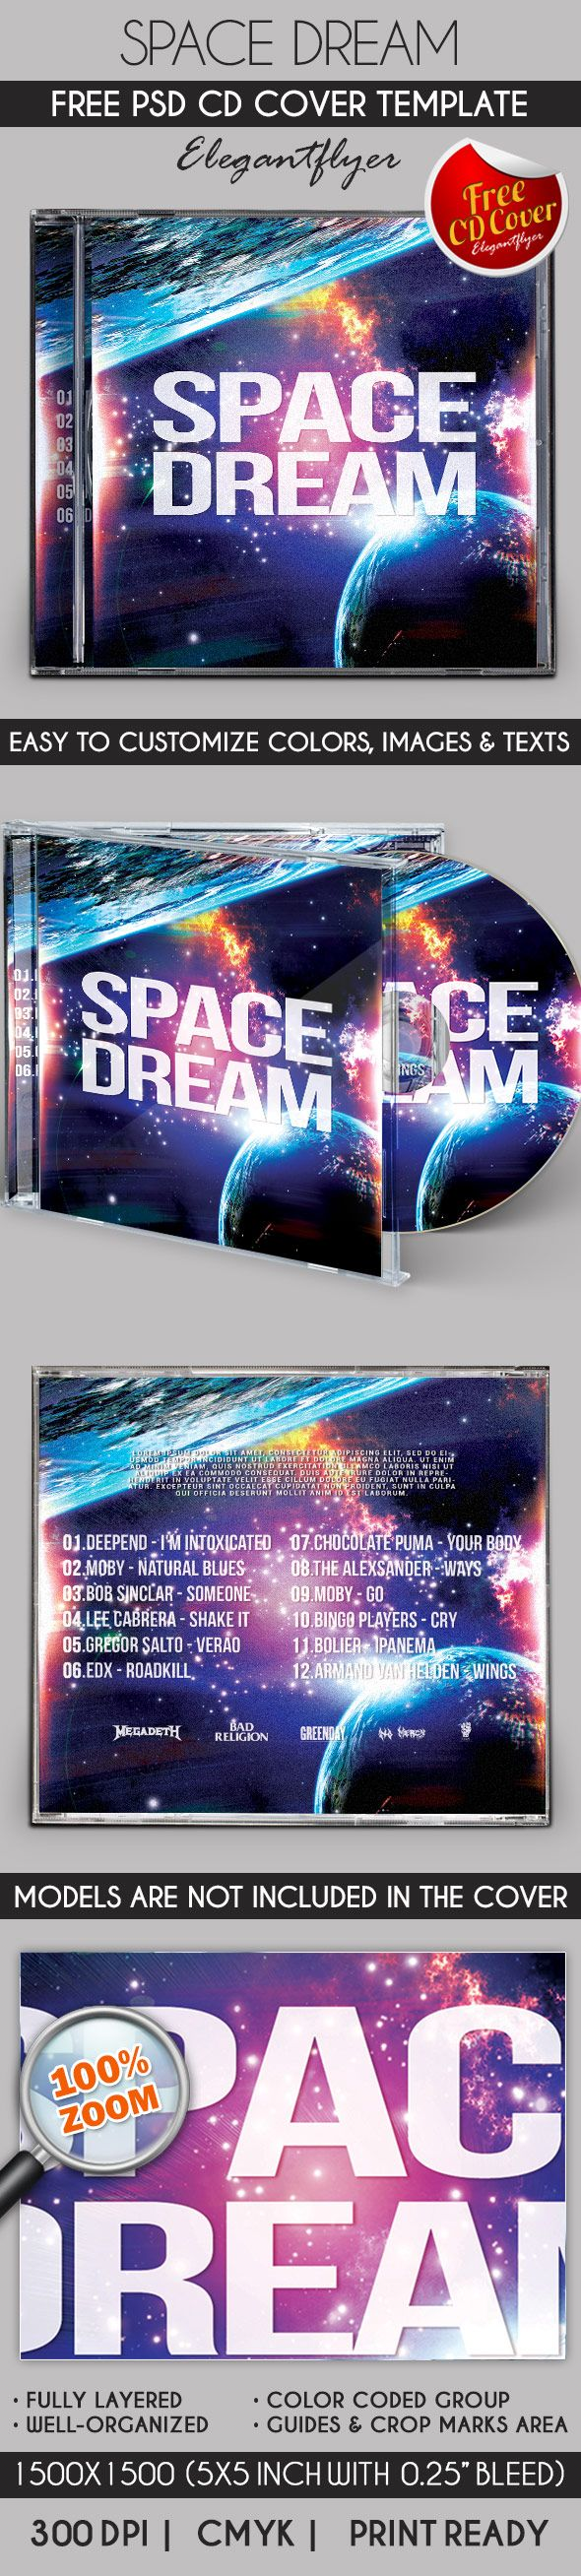 95 best free cd dvd cover templates images on pinterest